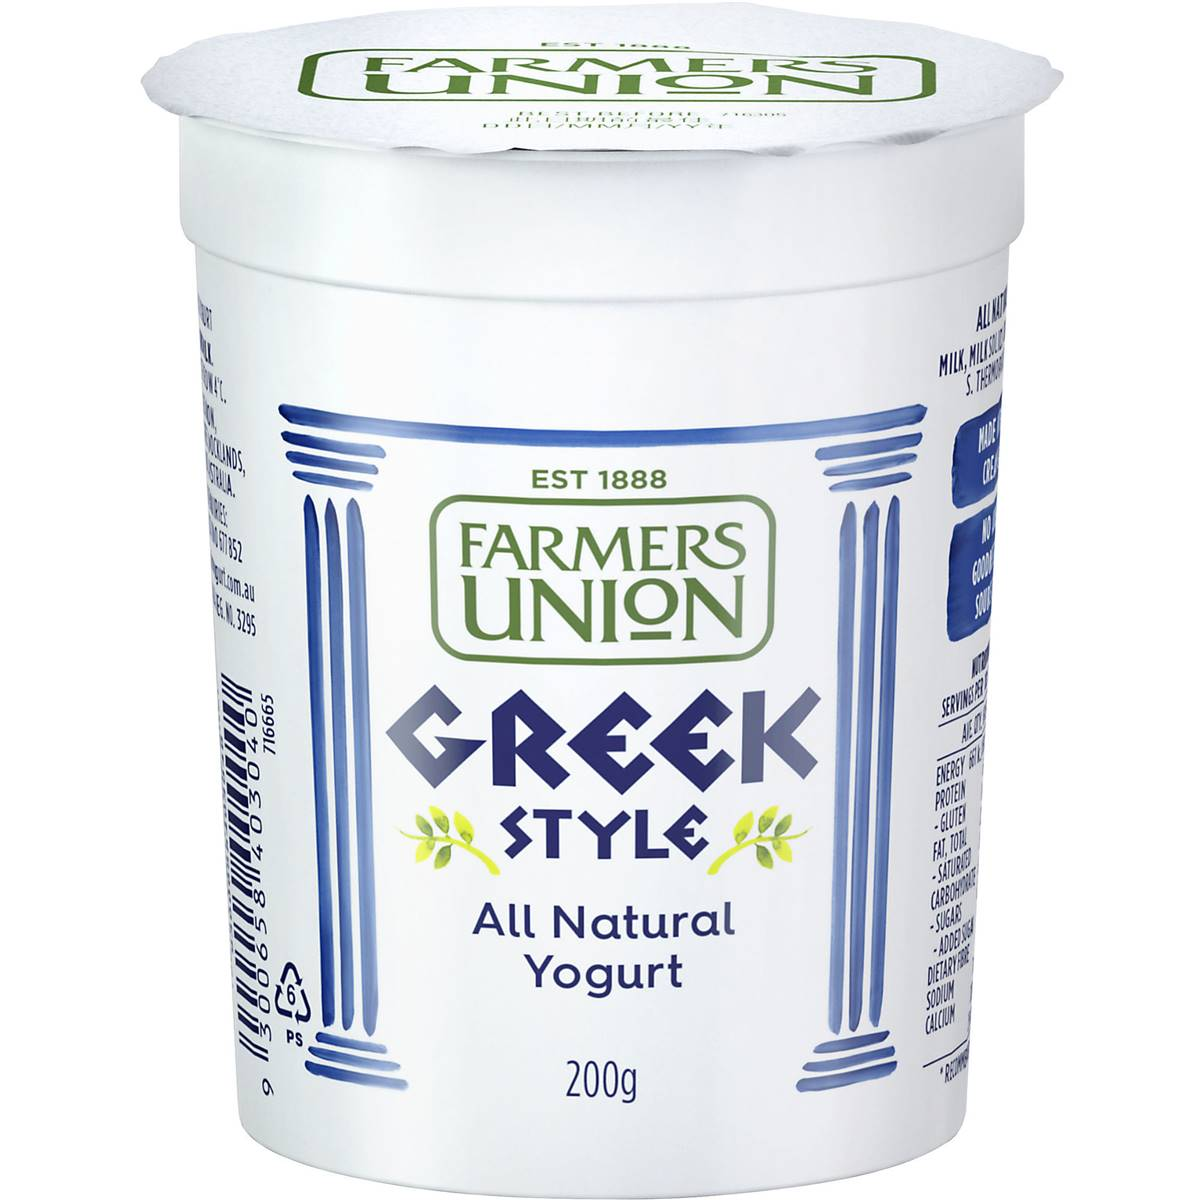 Farmers Union Greek Style Yoghurt 200g